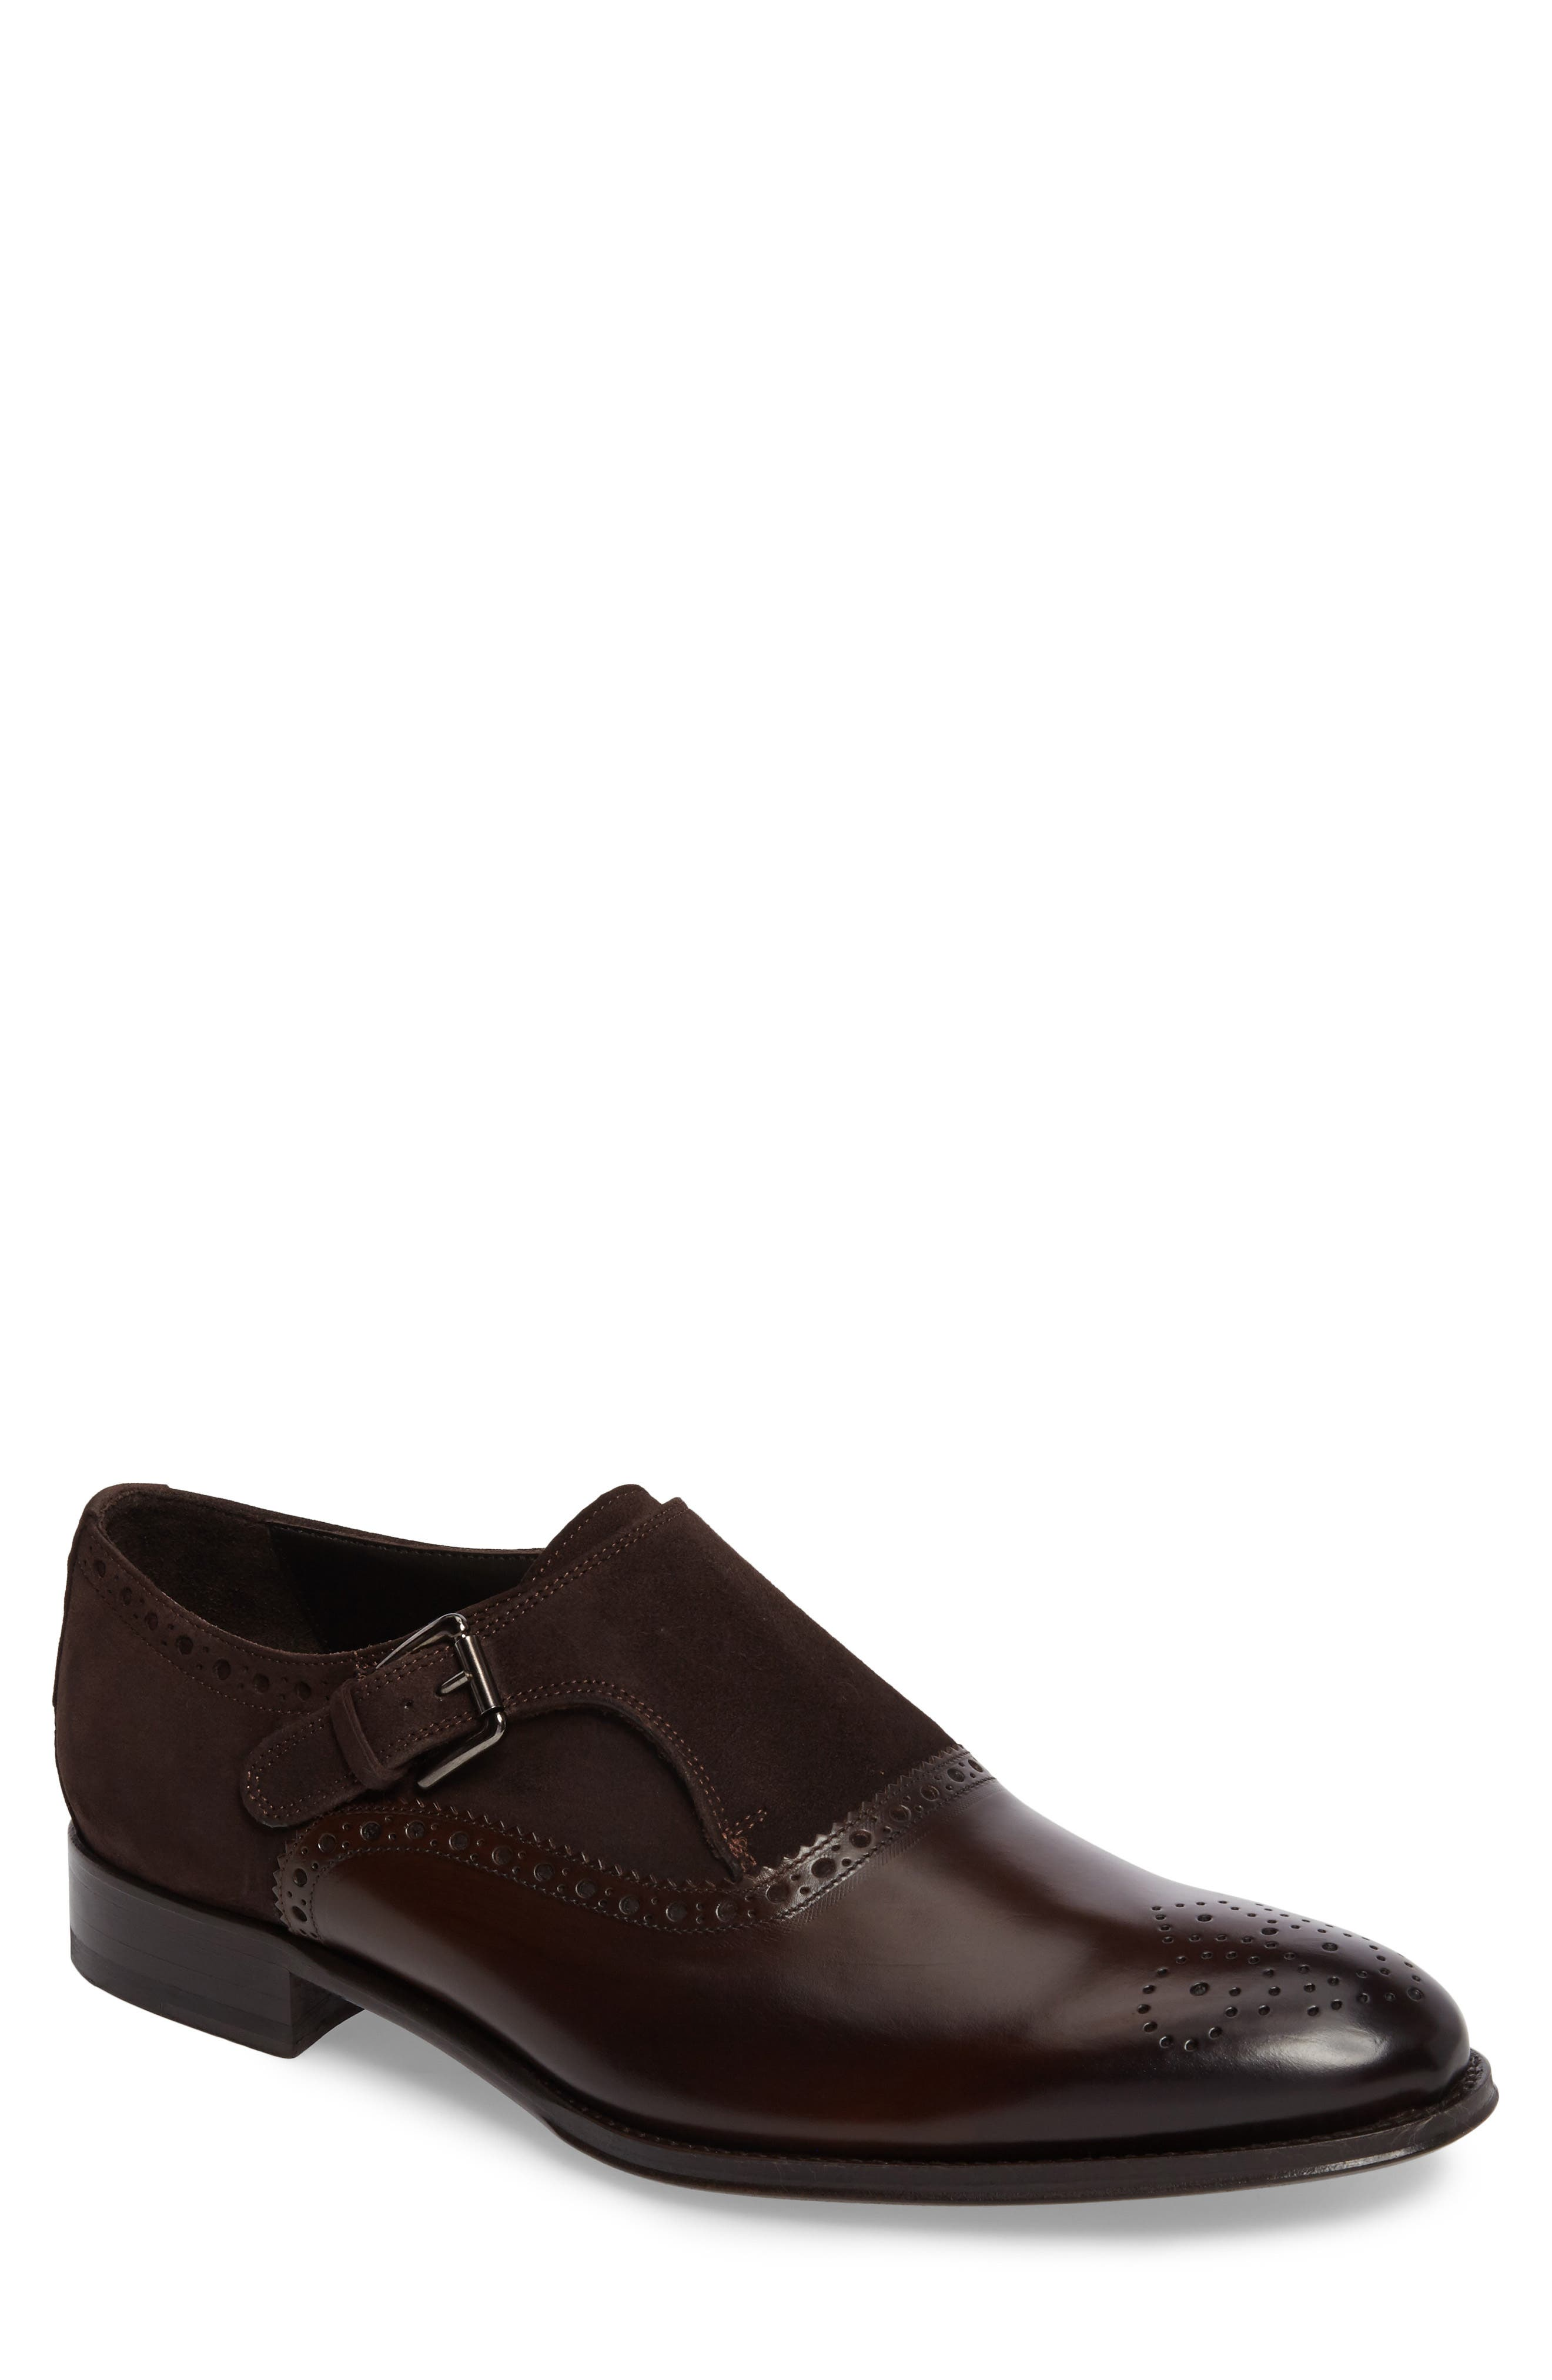 Arcadia Monk Strap Shoe,                             Main thumbnail 1, color,                             Brown Leather/ Suede